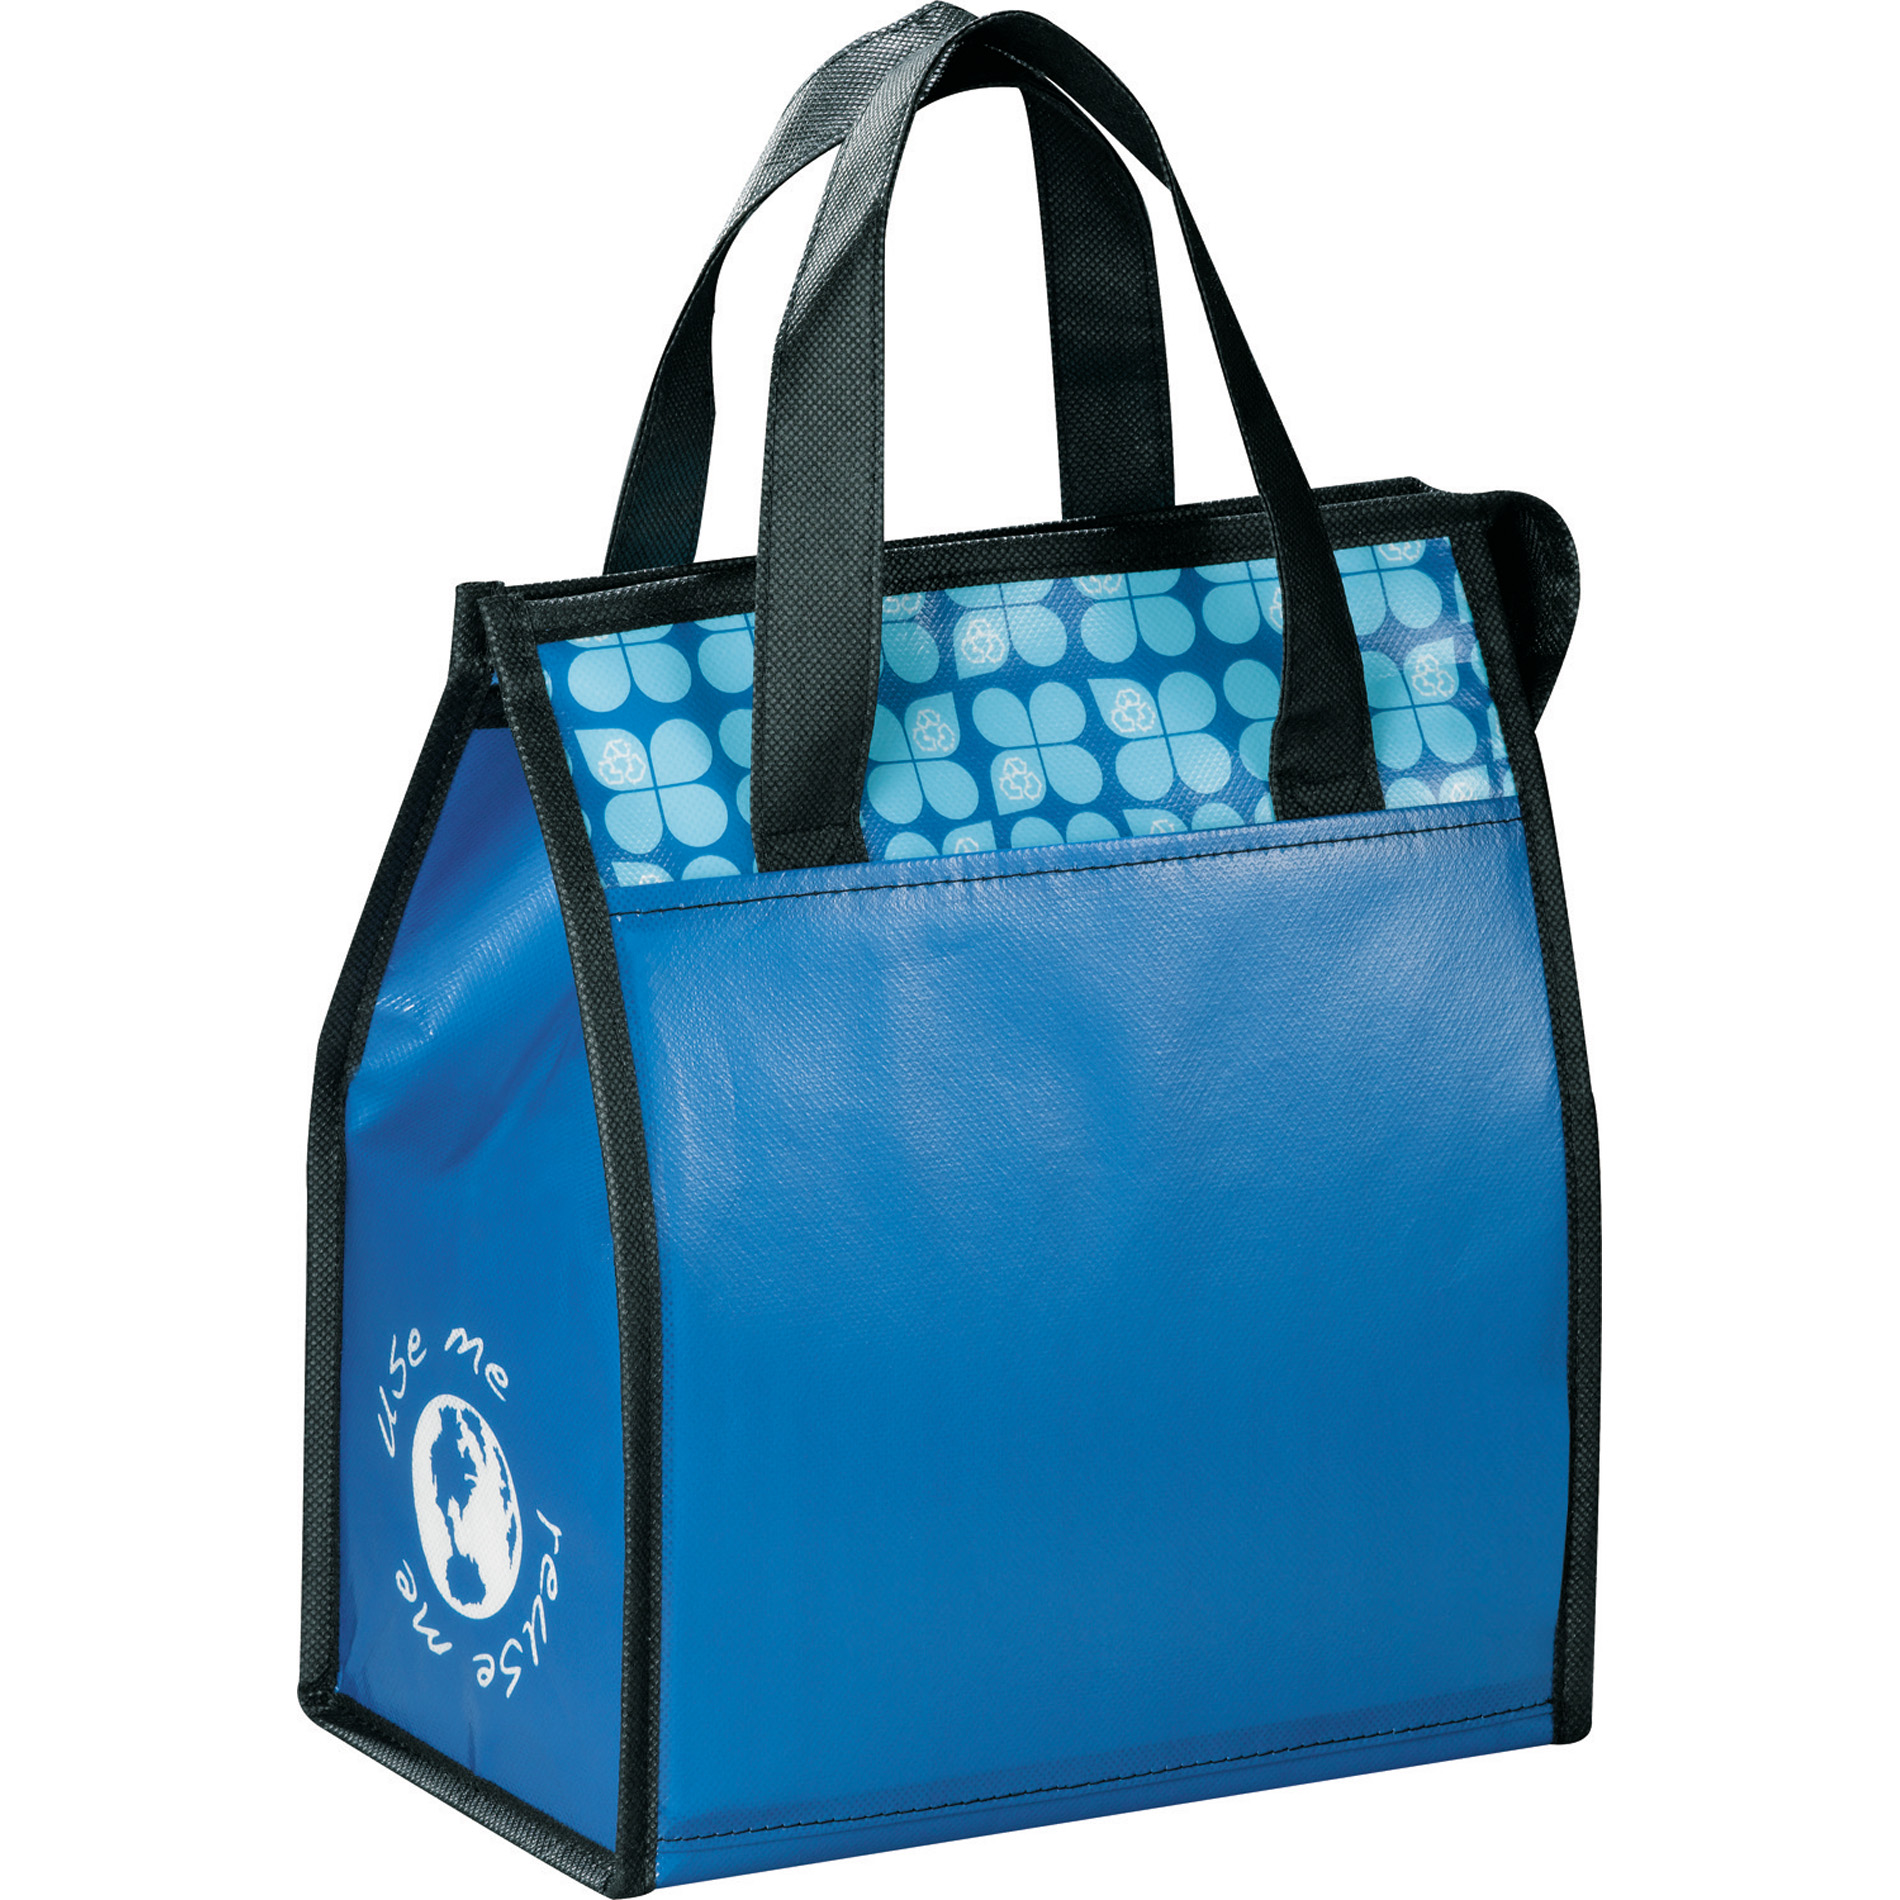 LEEDS 2160-83 - Laminated Non-Woven 6 Can Lunch Cooler